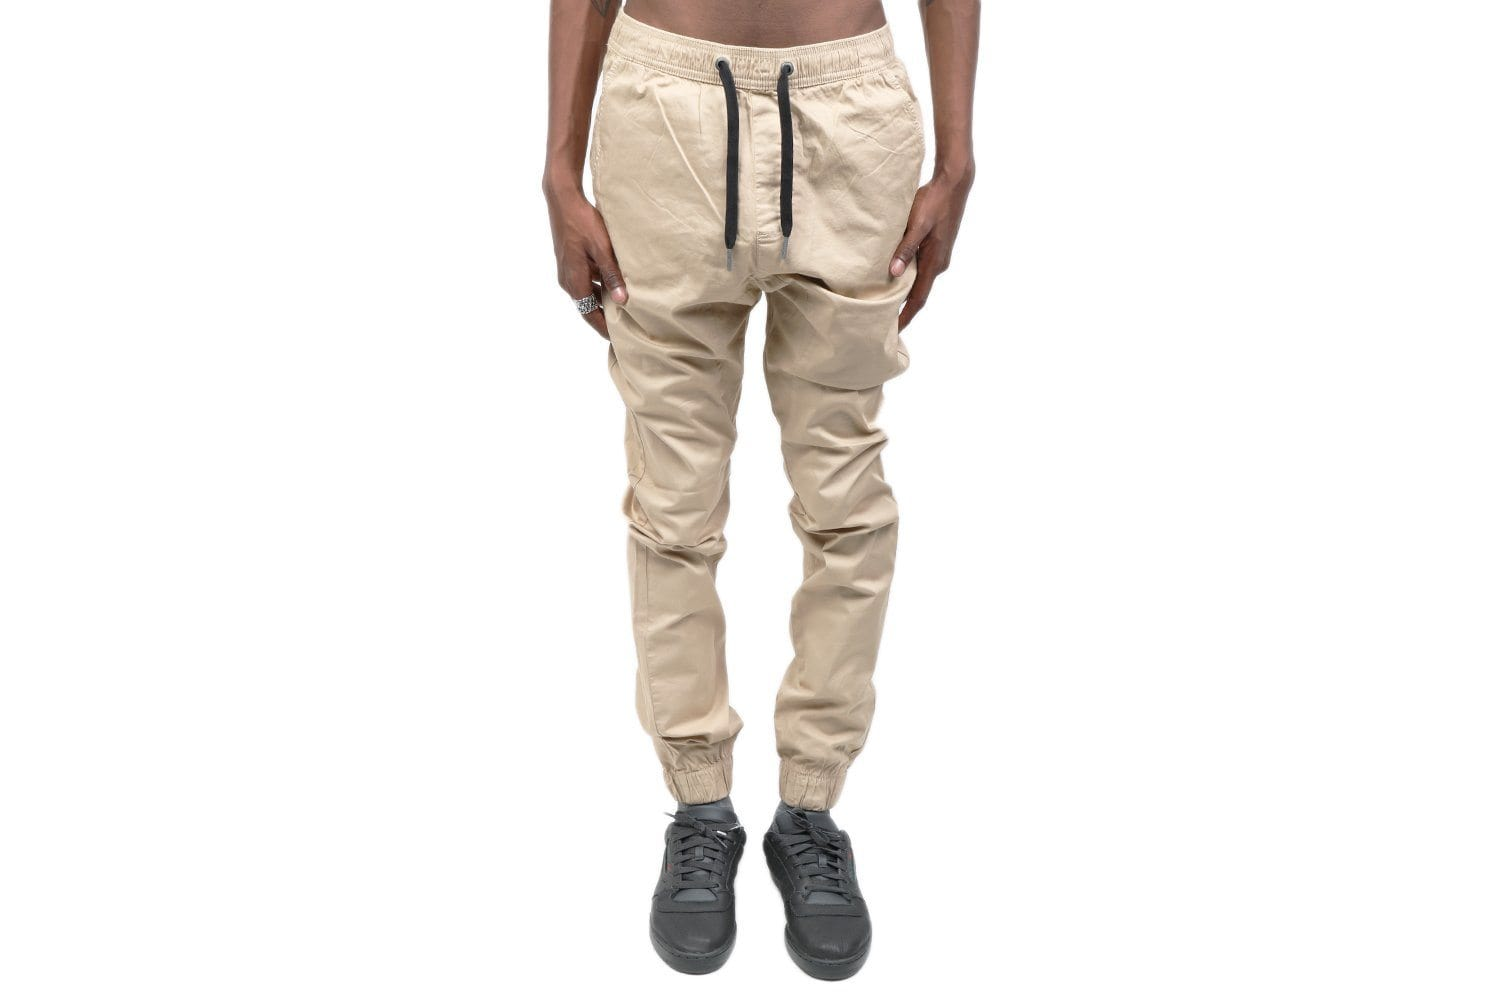 SURESHOT LIGHTWEIGHT JOGGER MENS SOFTGOODS ZANEROBE TAN 30